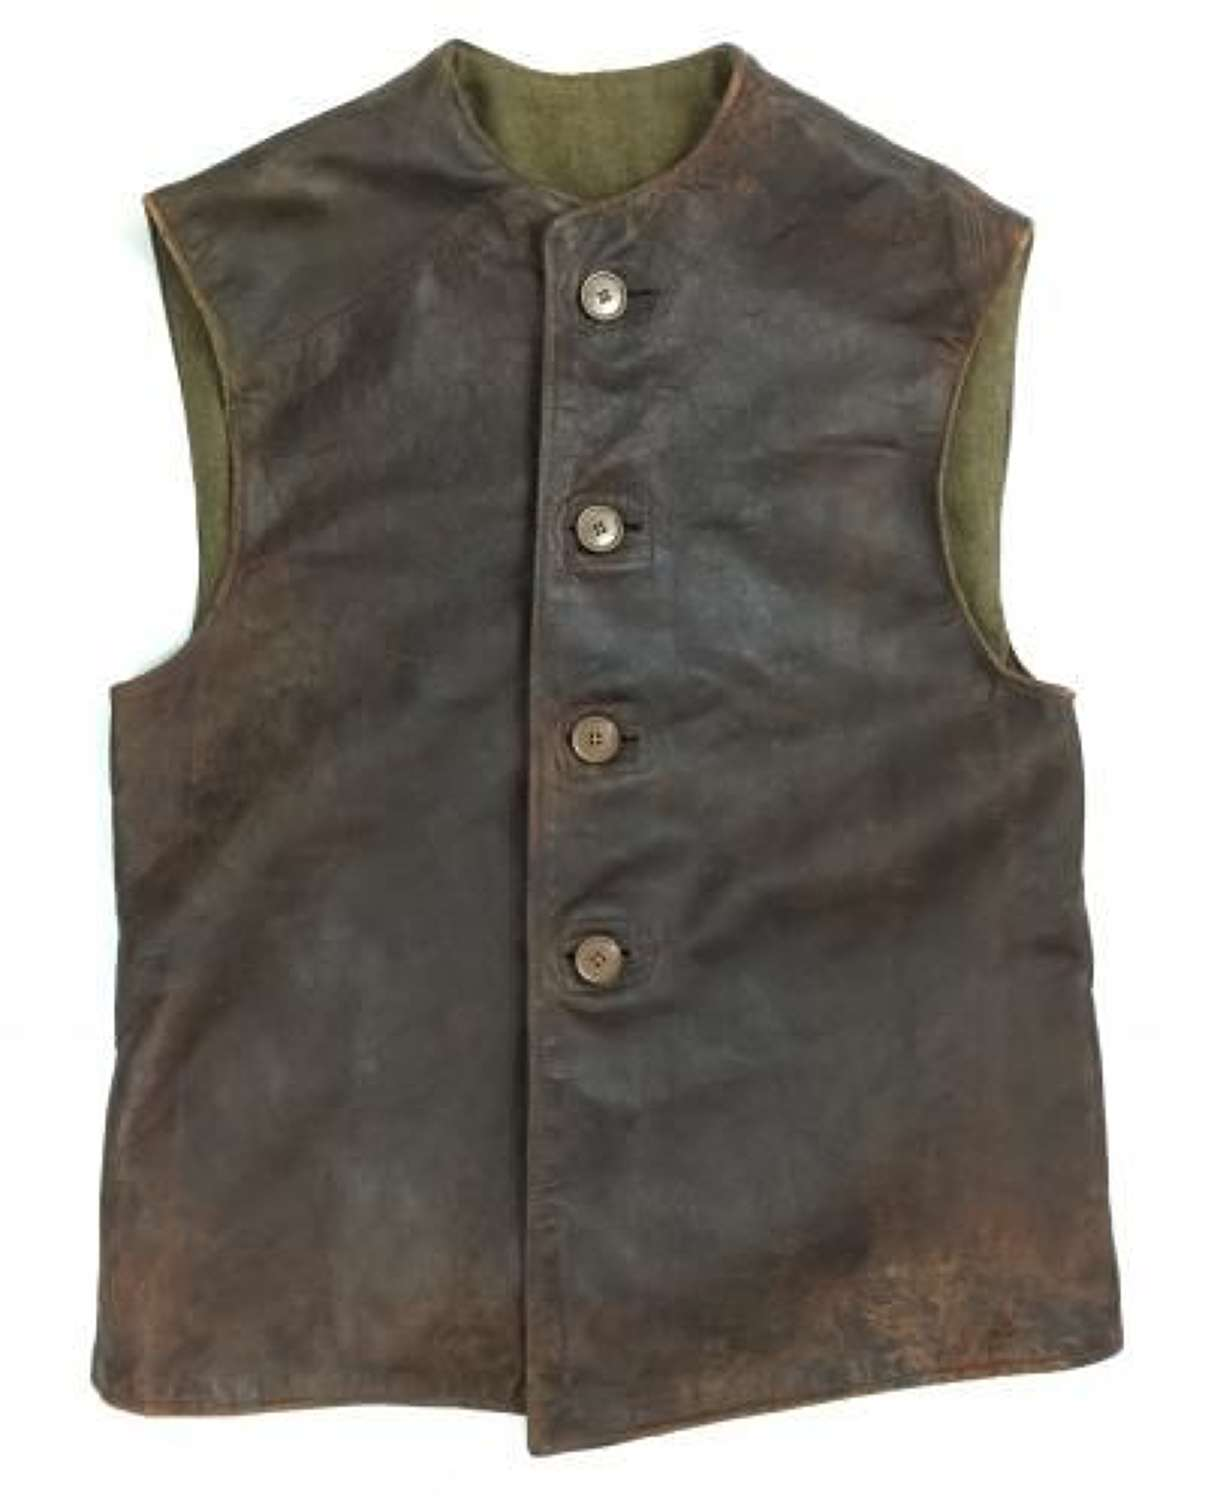 Original 1944 Dated 'Jerkins, Leather, No.2 Camouflaged' - Size 2